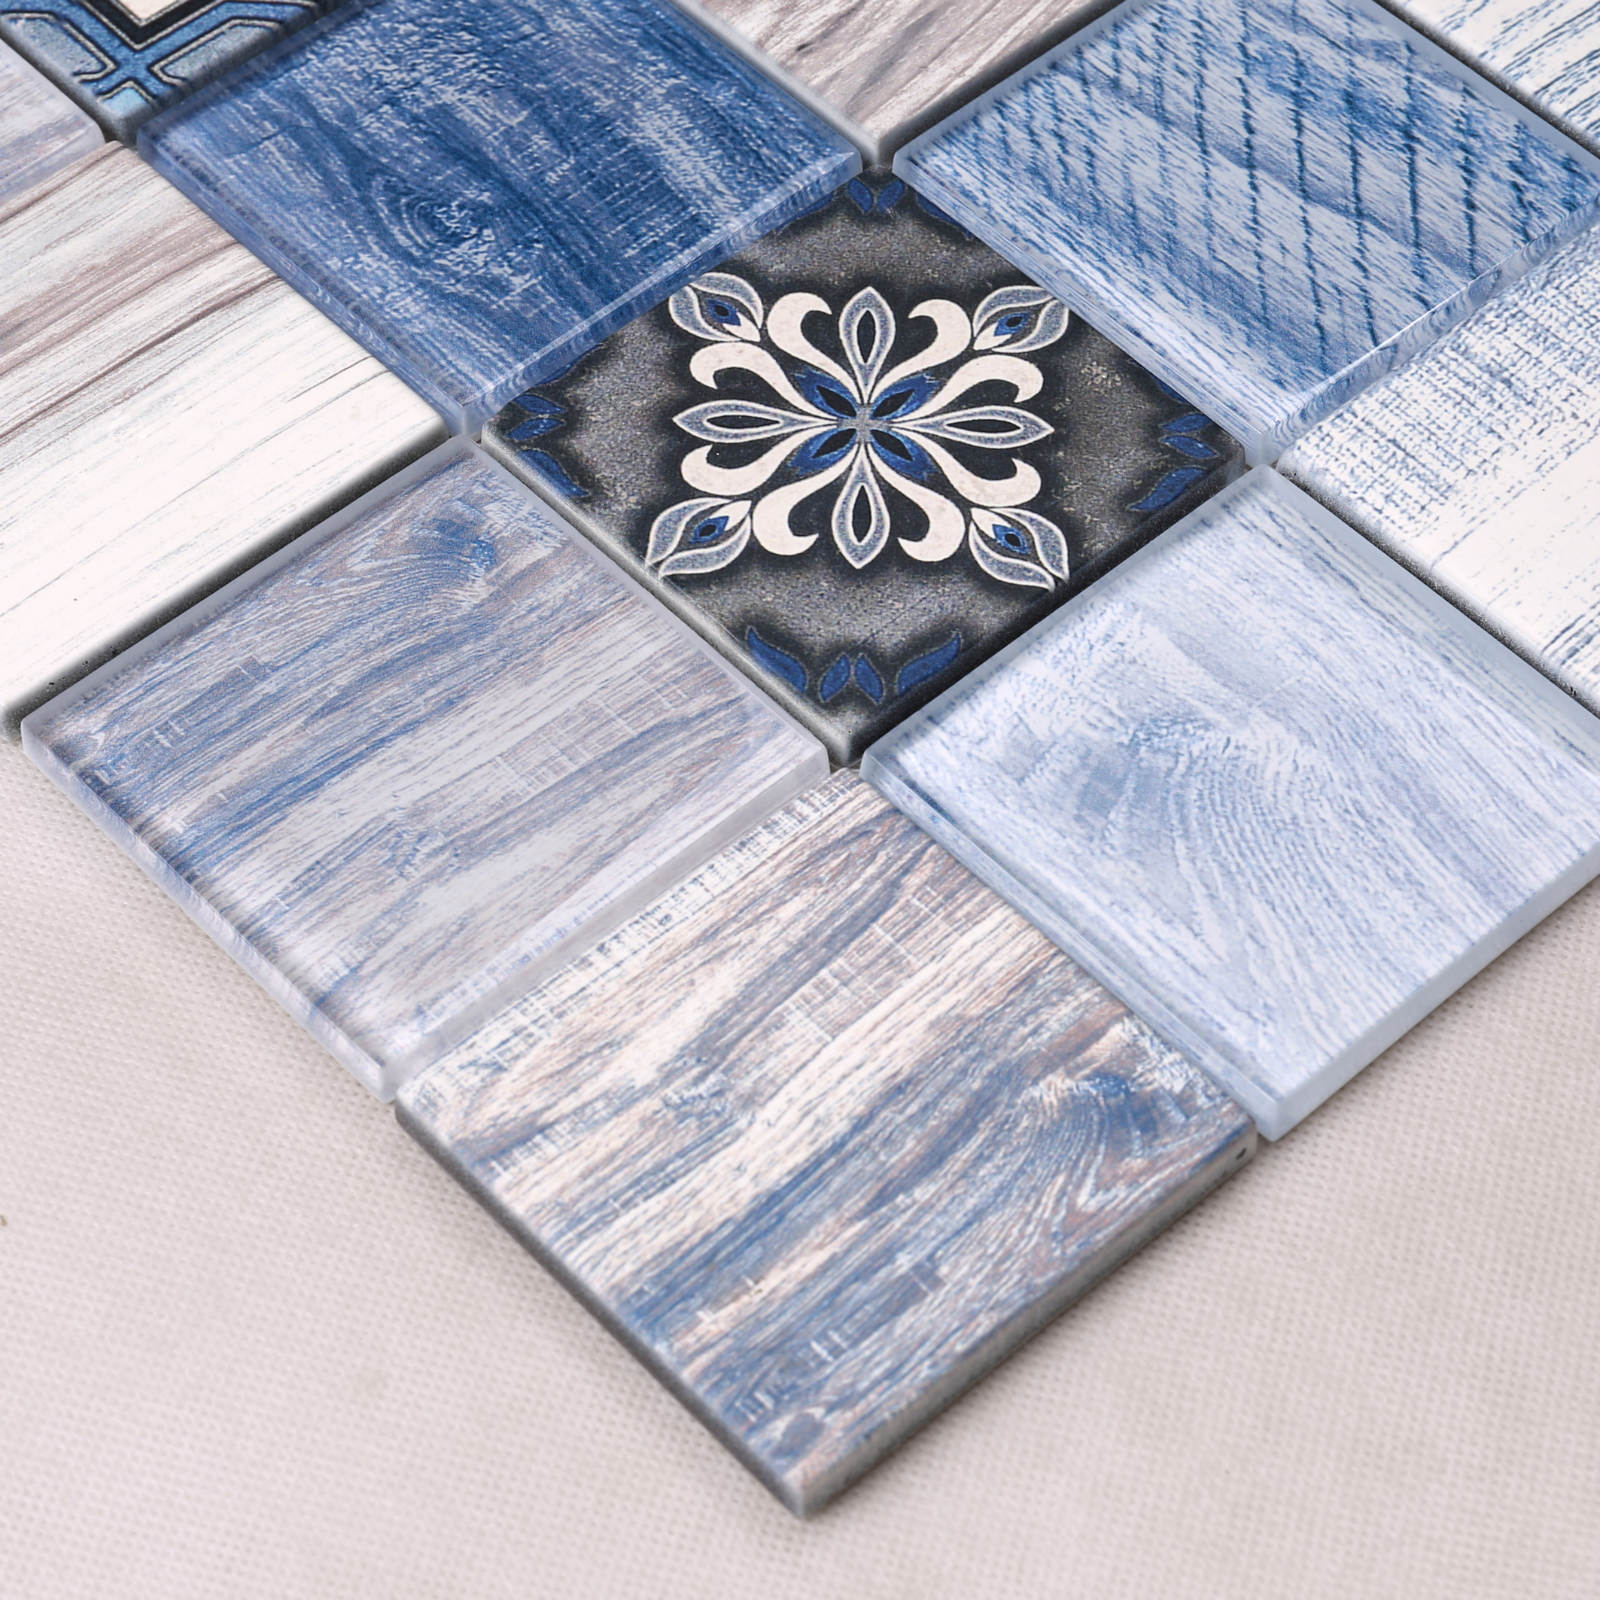 Heng Xing-Oem Green Glass Tile Manufacturer, Glass Metal Mix Mosaic Tiles | Heng Xing-2